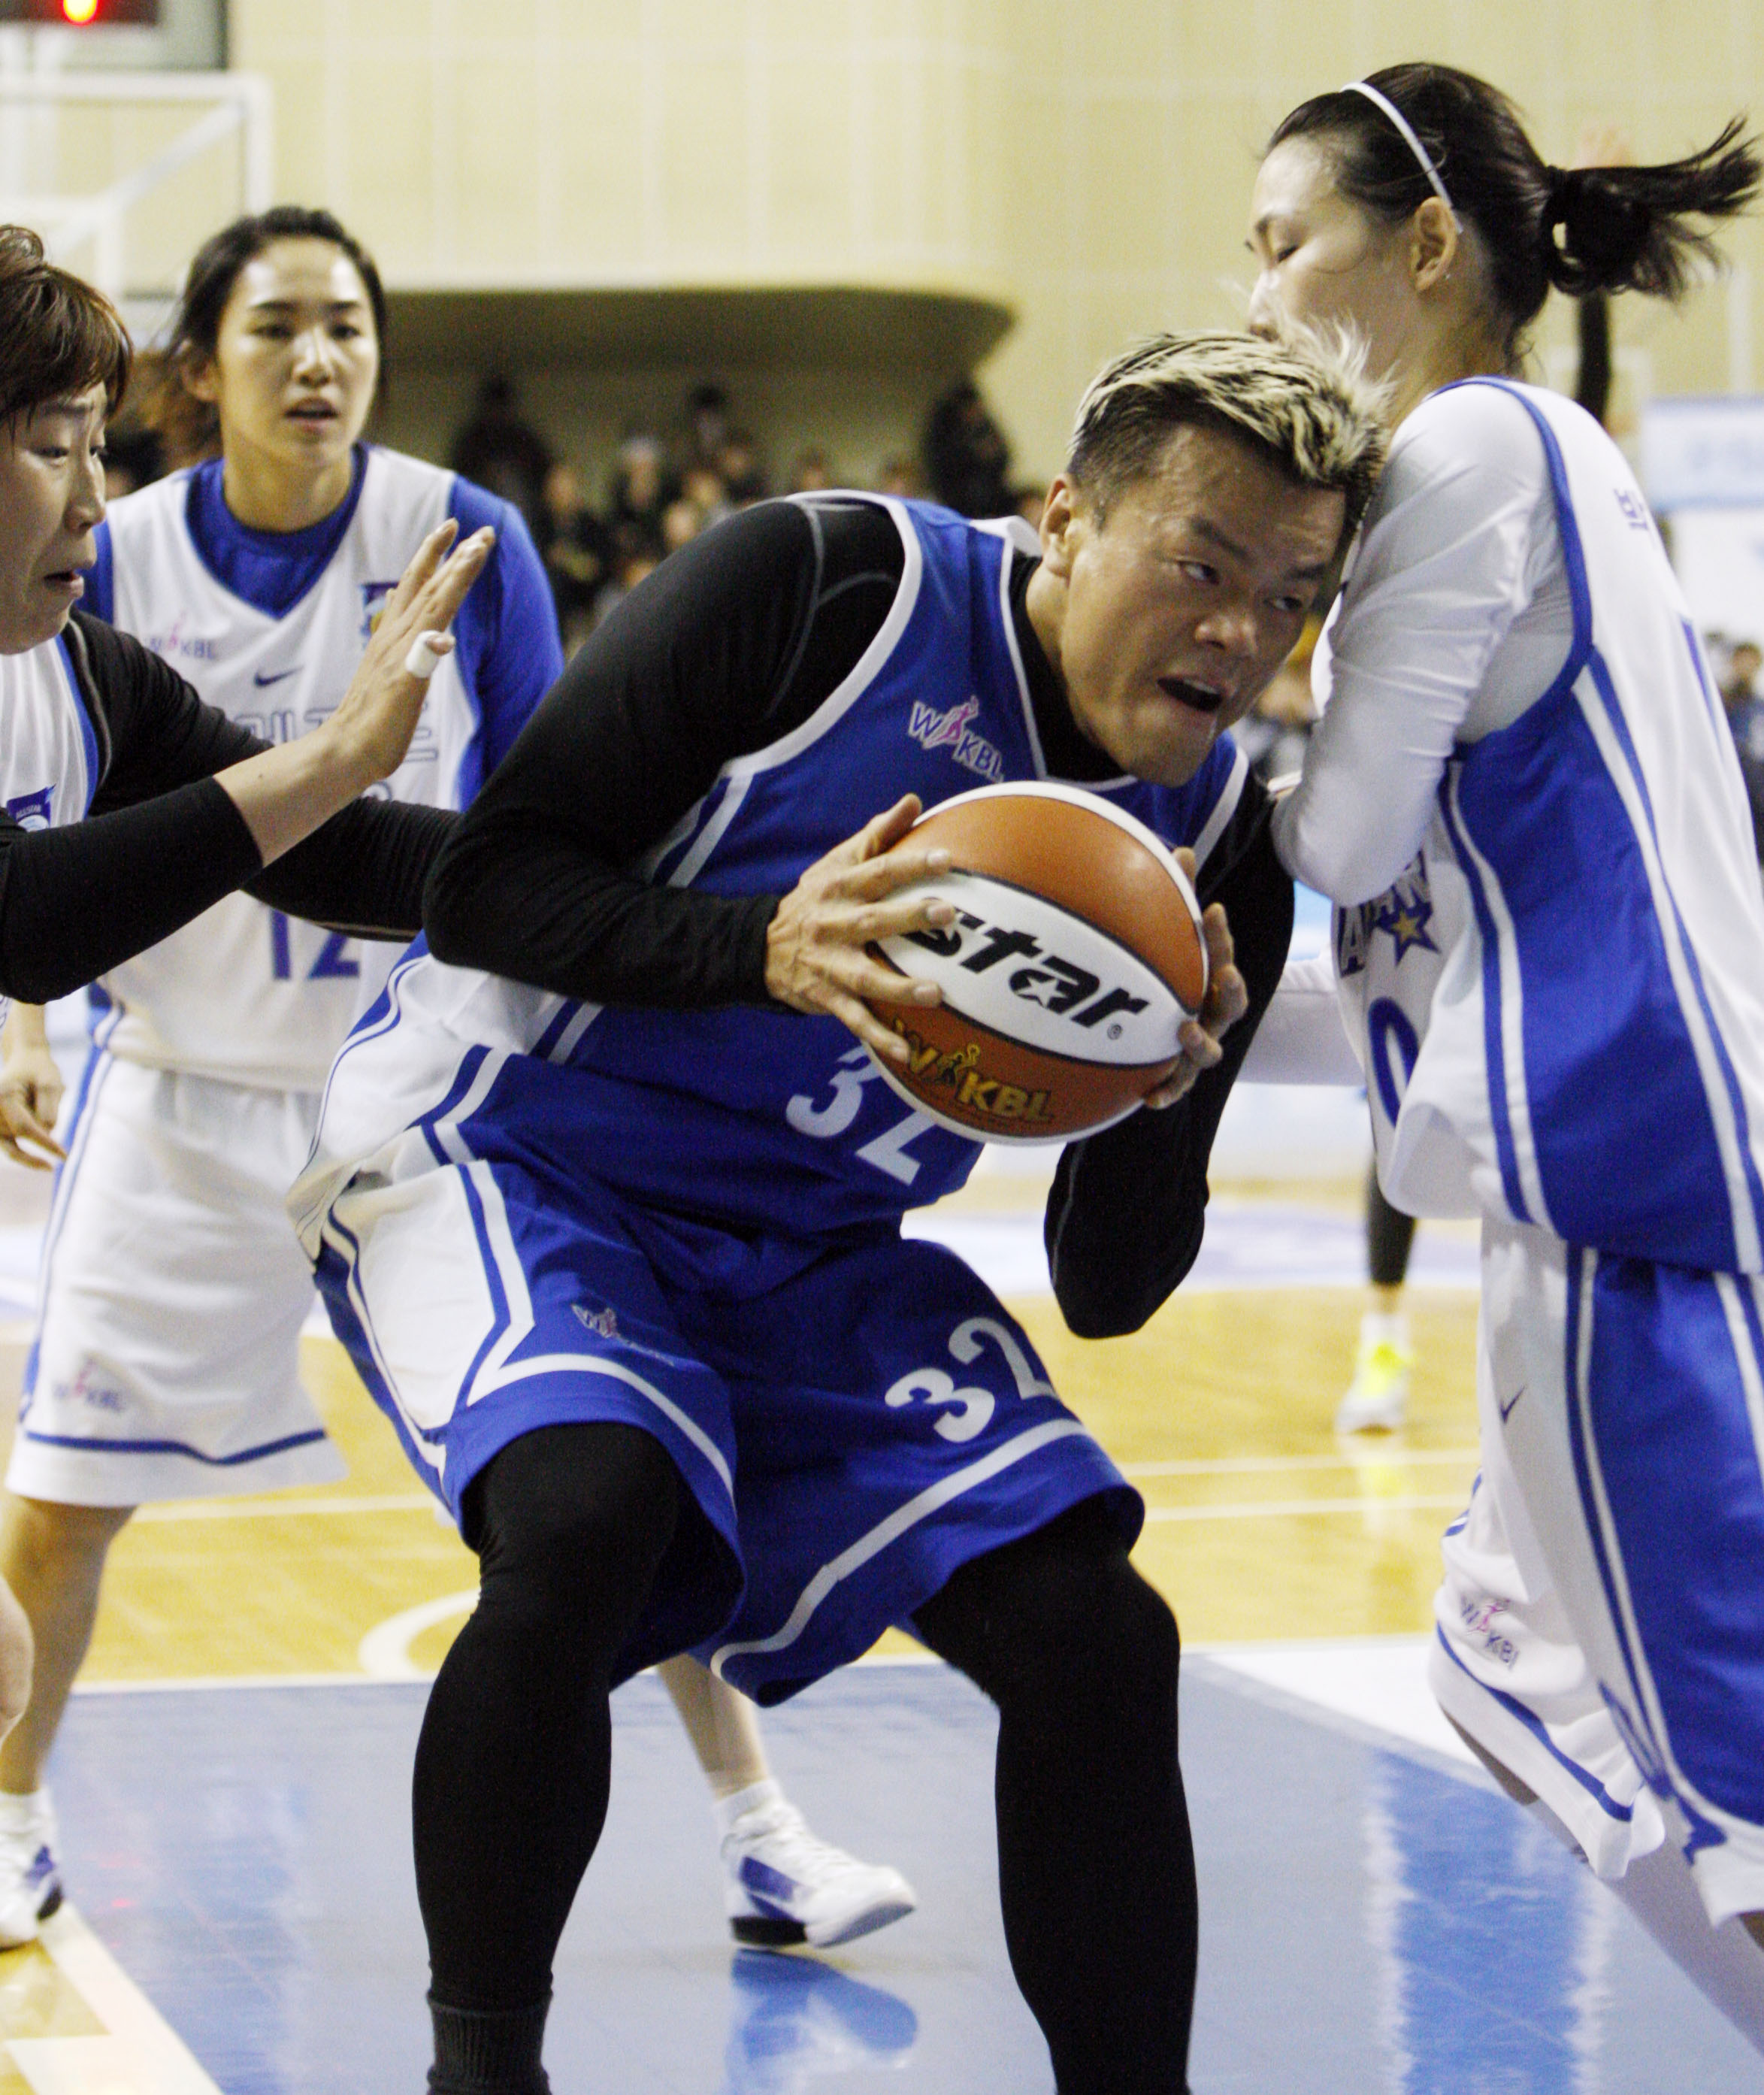 Singer Park Jin-young, middle, tries to fight through double team defense. Recently retired Park Jung-un, right, is known as one of the best forwards to ever play the game in Korea. (Yonhap)